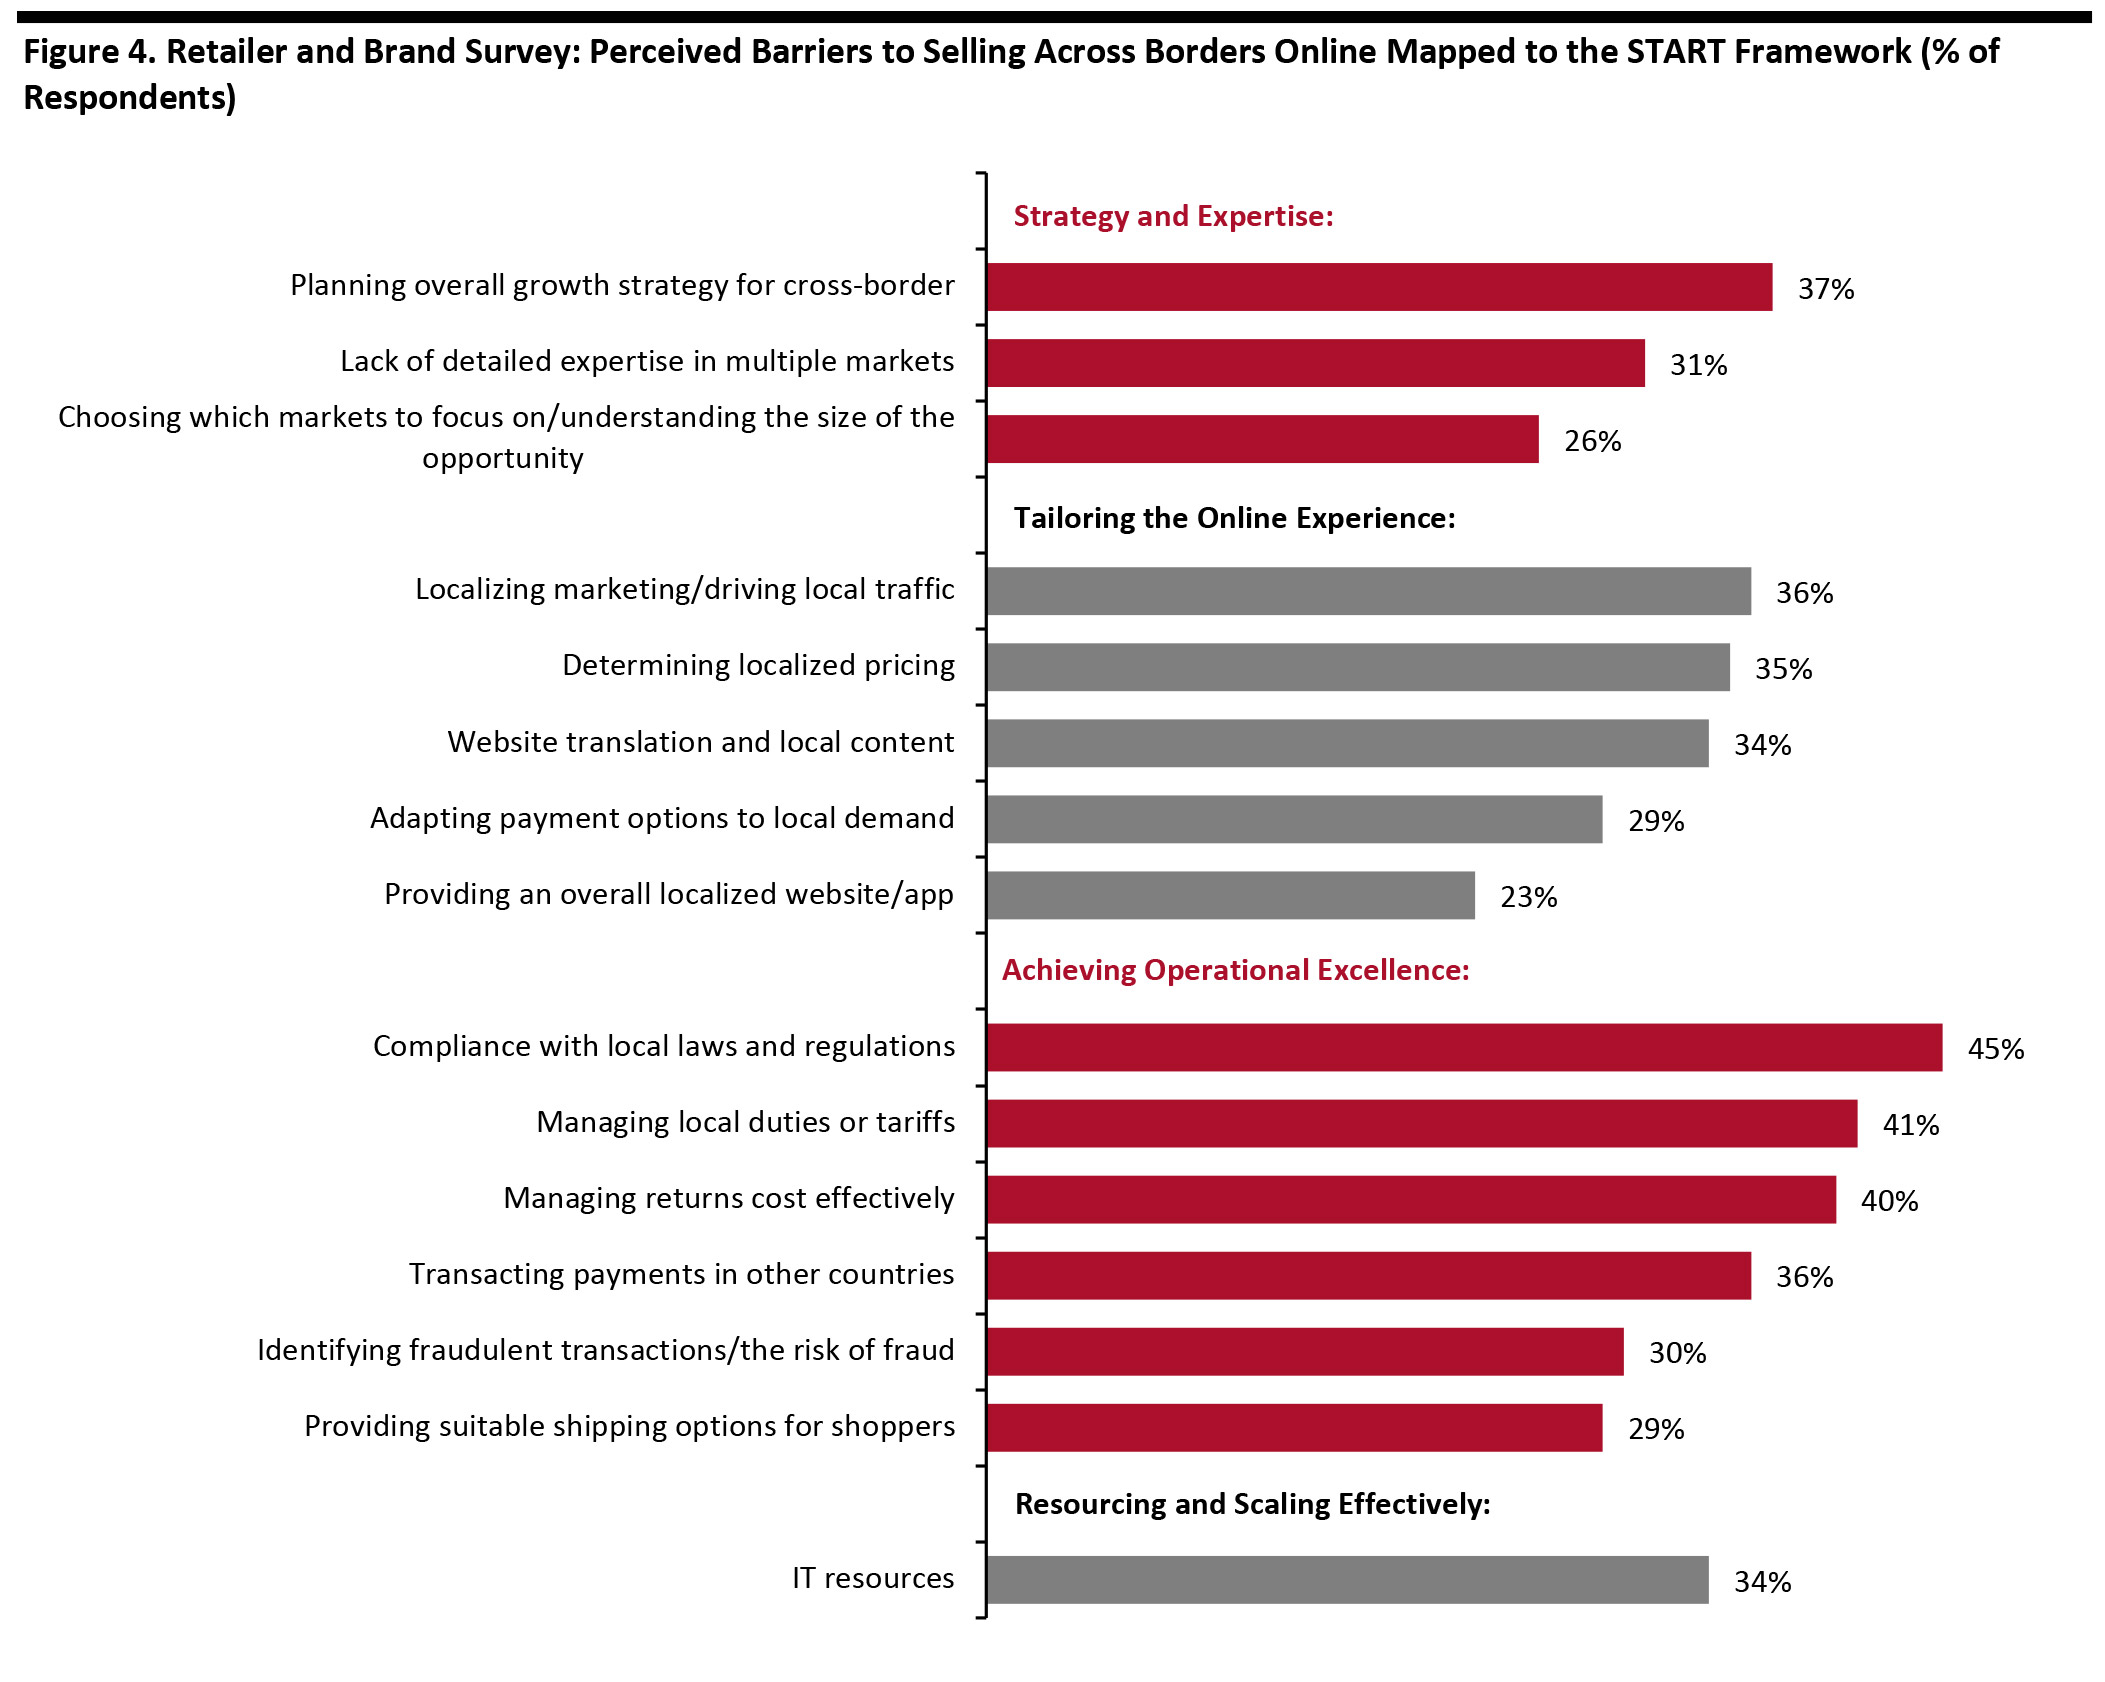 Figure 4. Retailer and Brand Survey: Perceived Barriers to Selling Across Borders Online Mapped to the START Framework (% of Respondents)